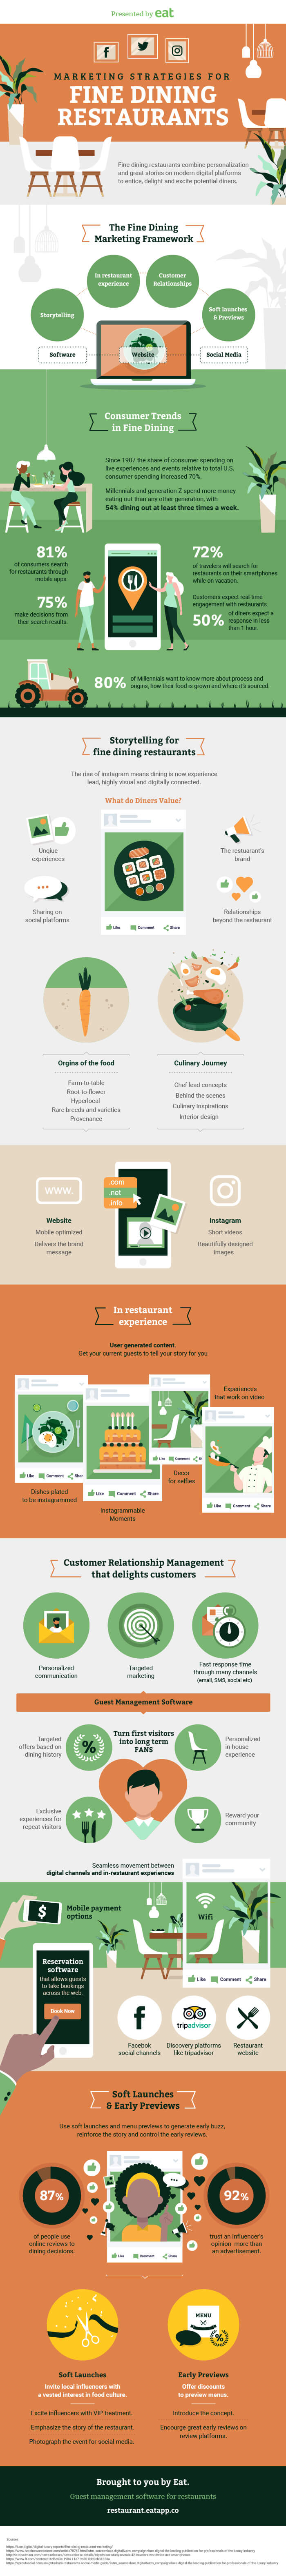 Fine Dining Restaurant Marketing Infographic